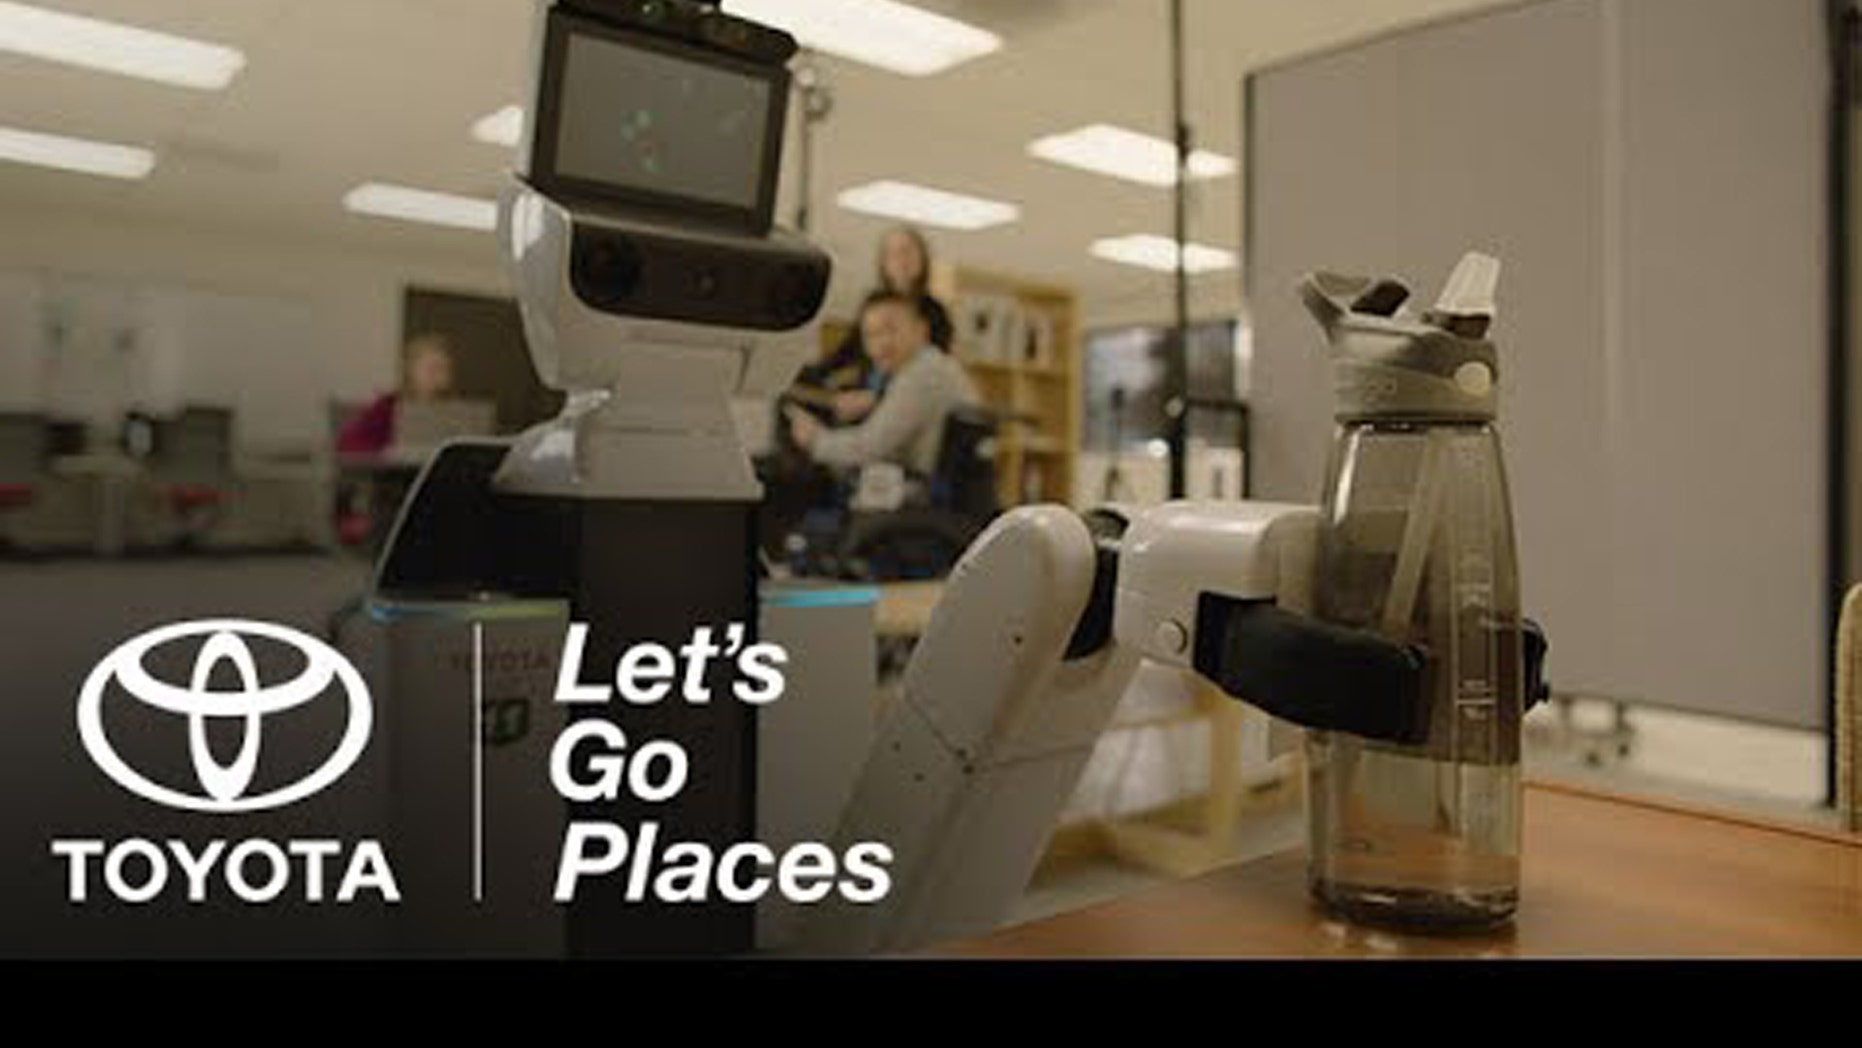 (Human Support Robot, Credit: Toyota YouTube)